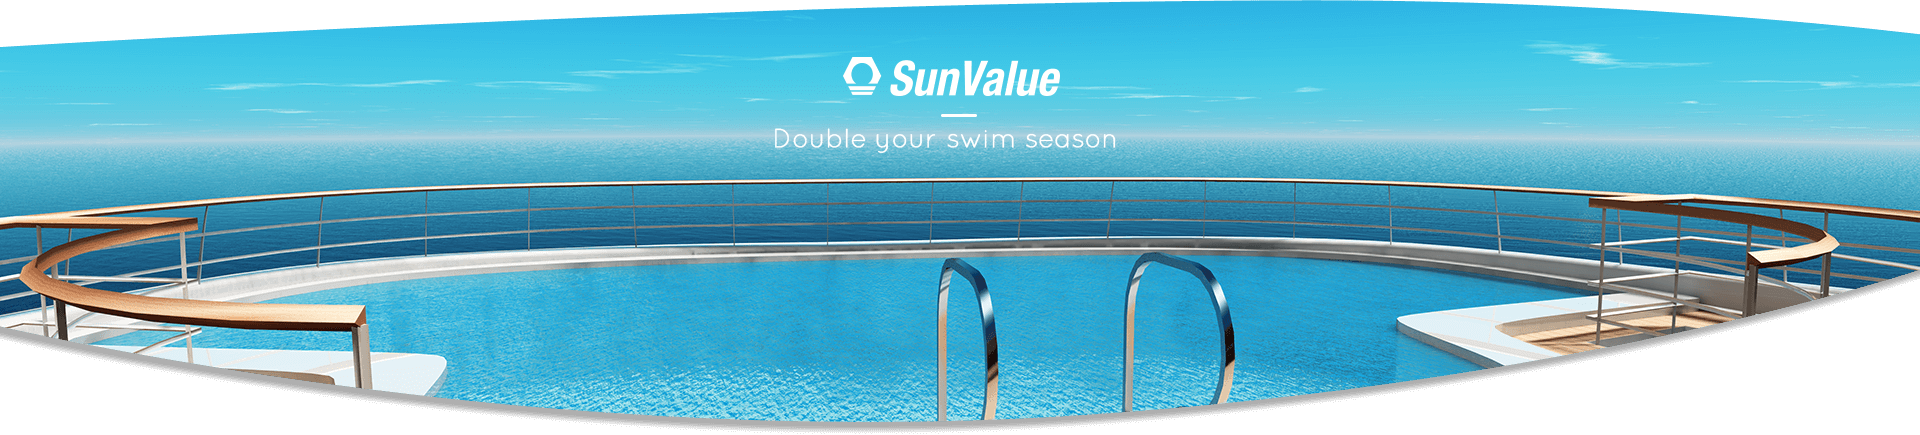 Winter is coming but SunValue is here: Swimming pool solar heating!